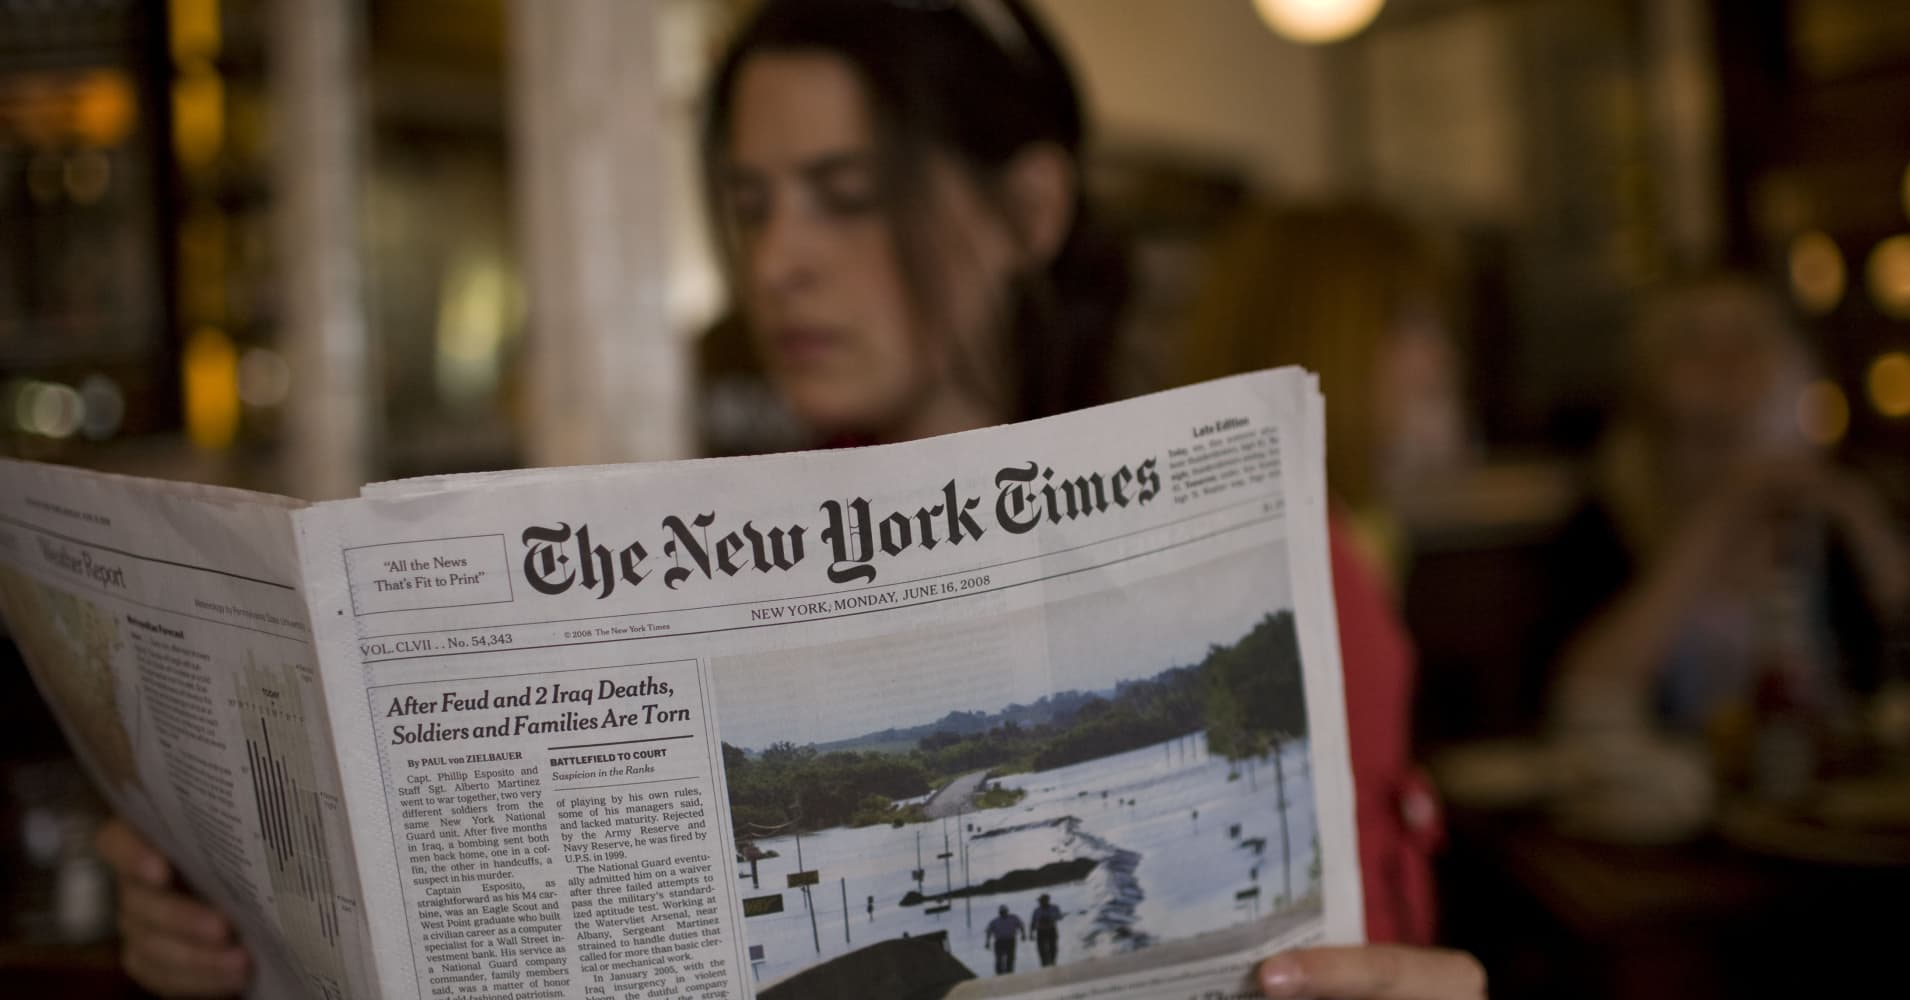 Print journalism may last another 10 years, says New York Times CEO